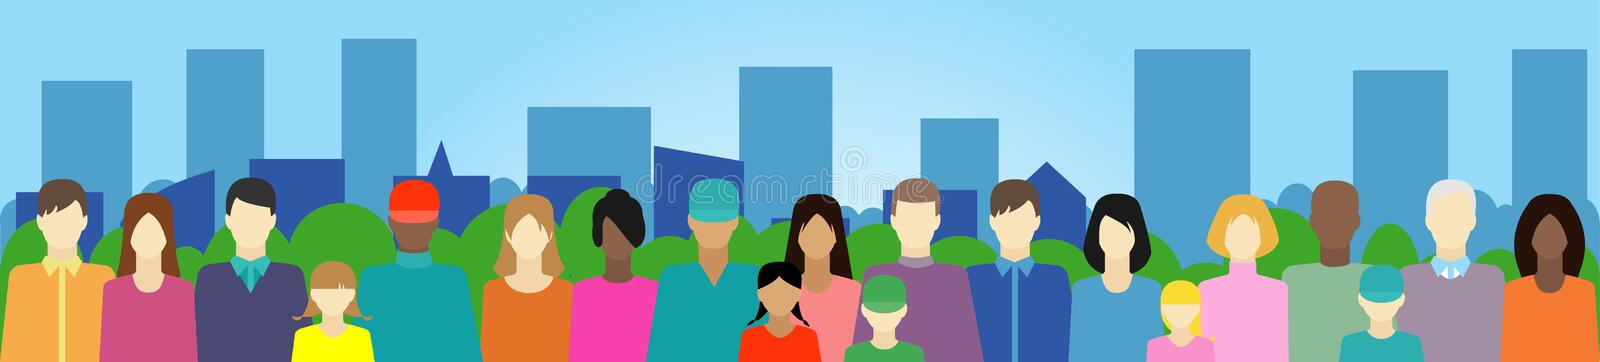 Set with people, family, electorate etc on city royalty free illustration